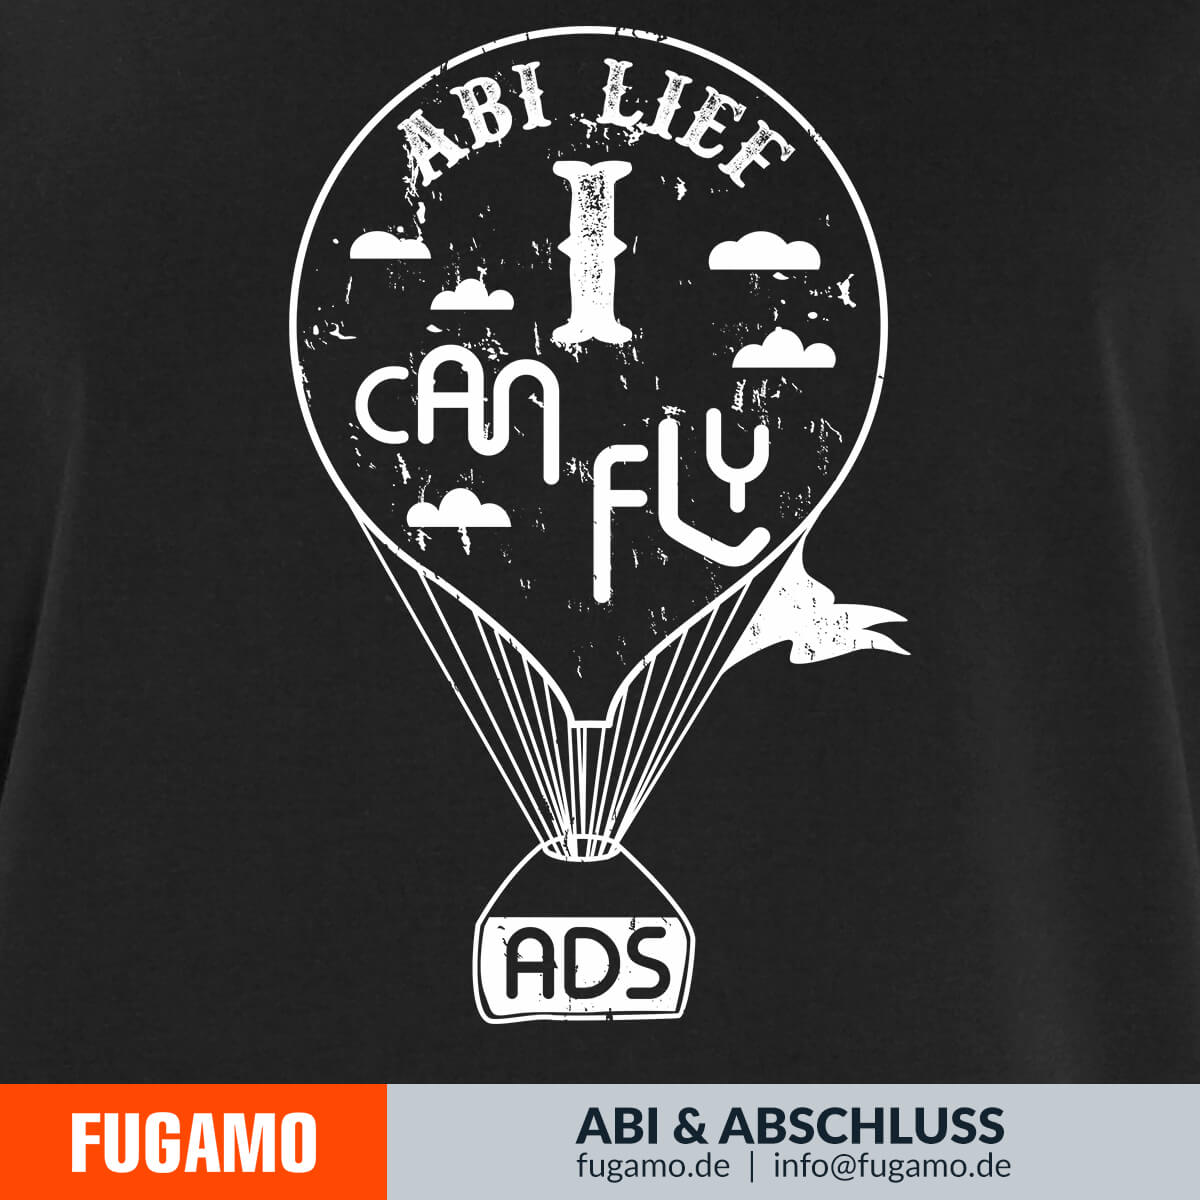 ABI lief i can fly - 02